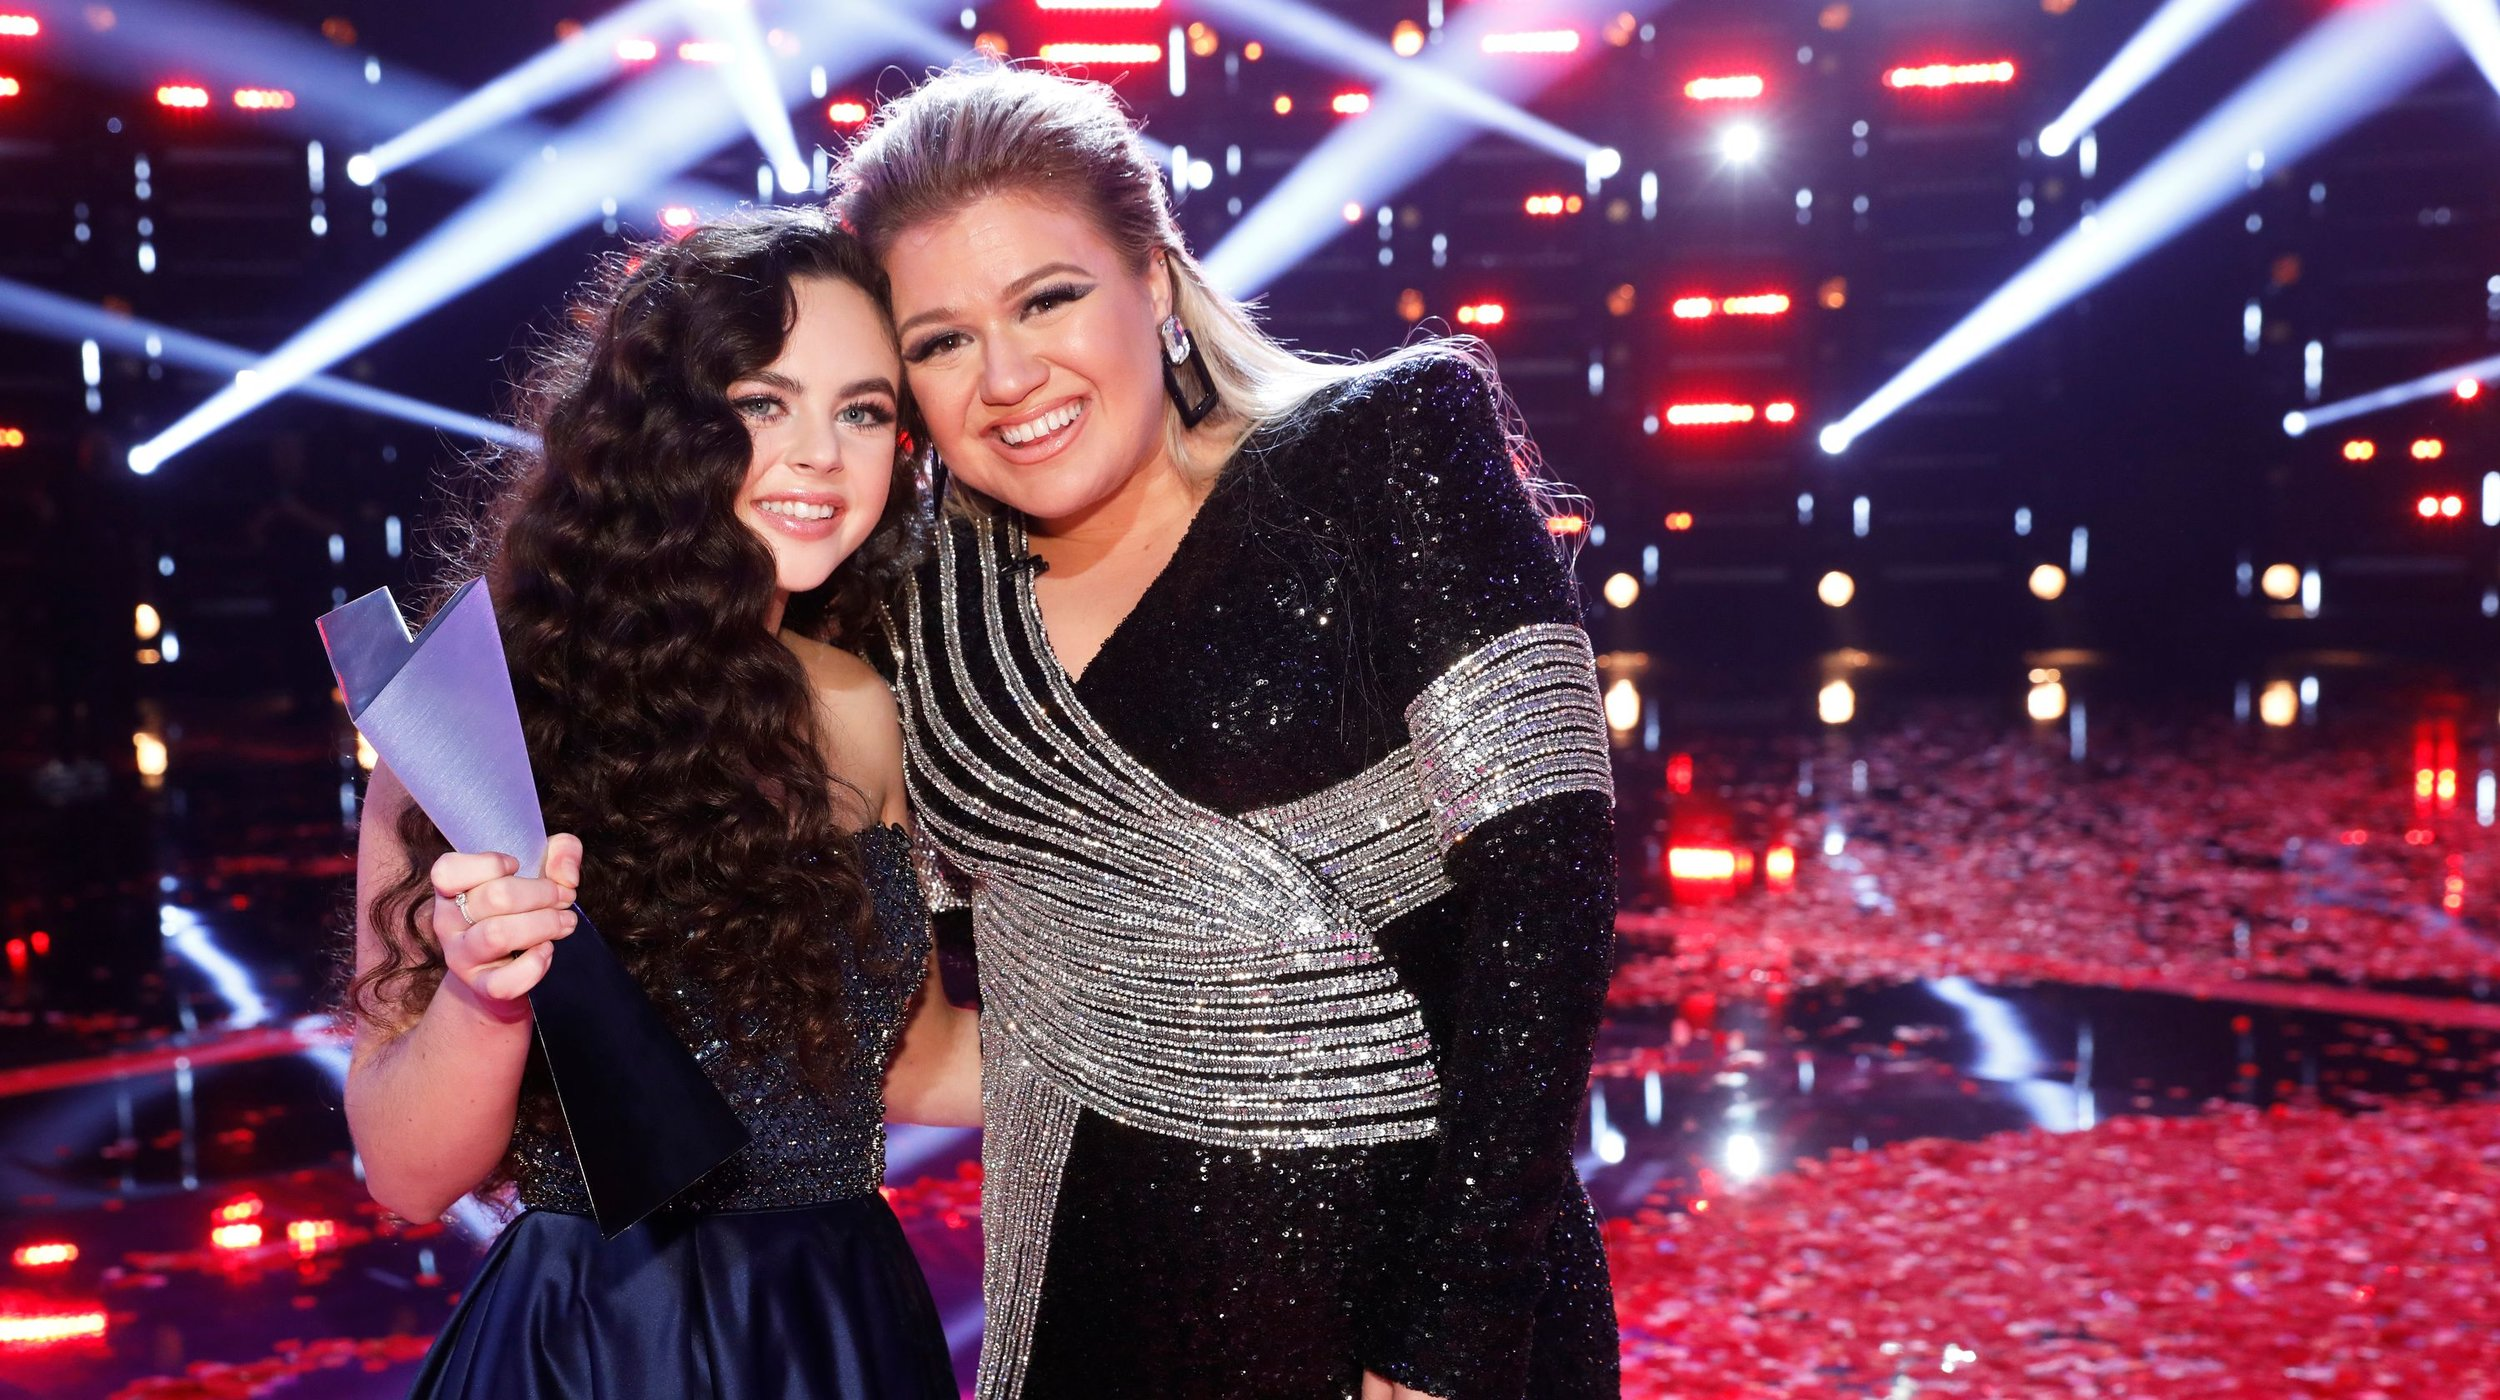 Chevel and Kelly